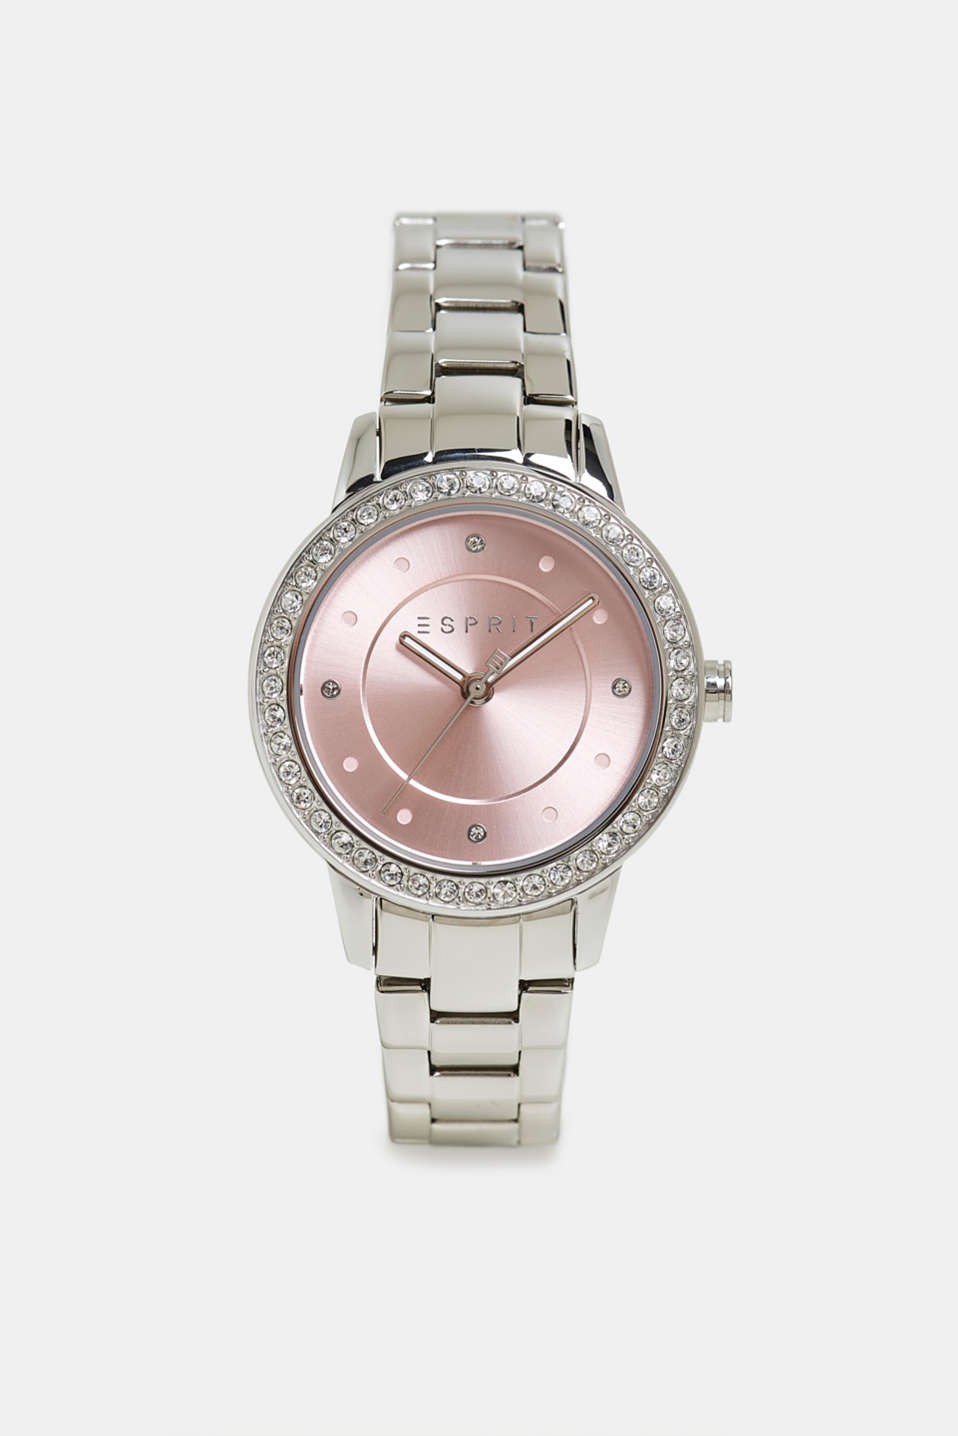 Esprit - Stainless steel watch with zirconia